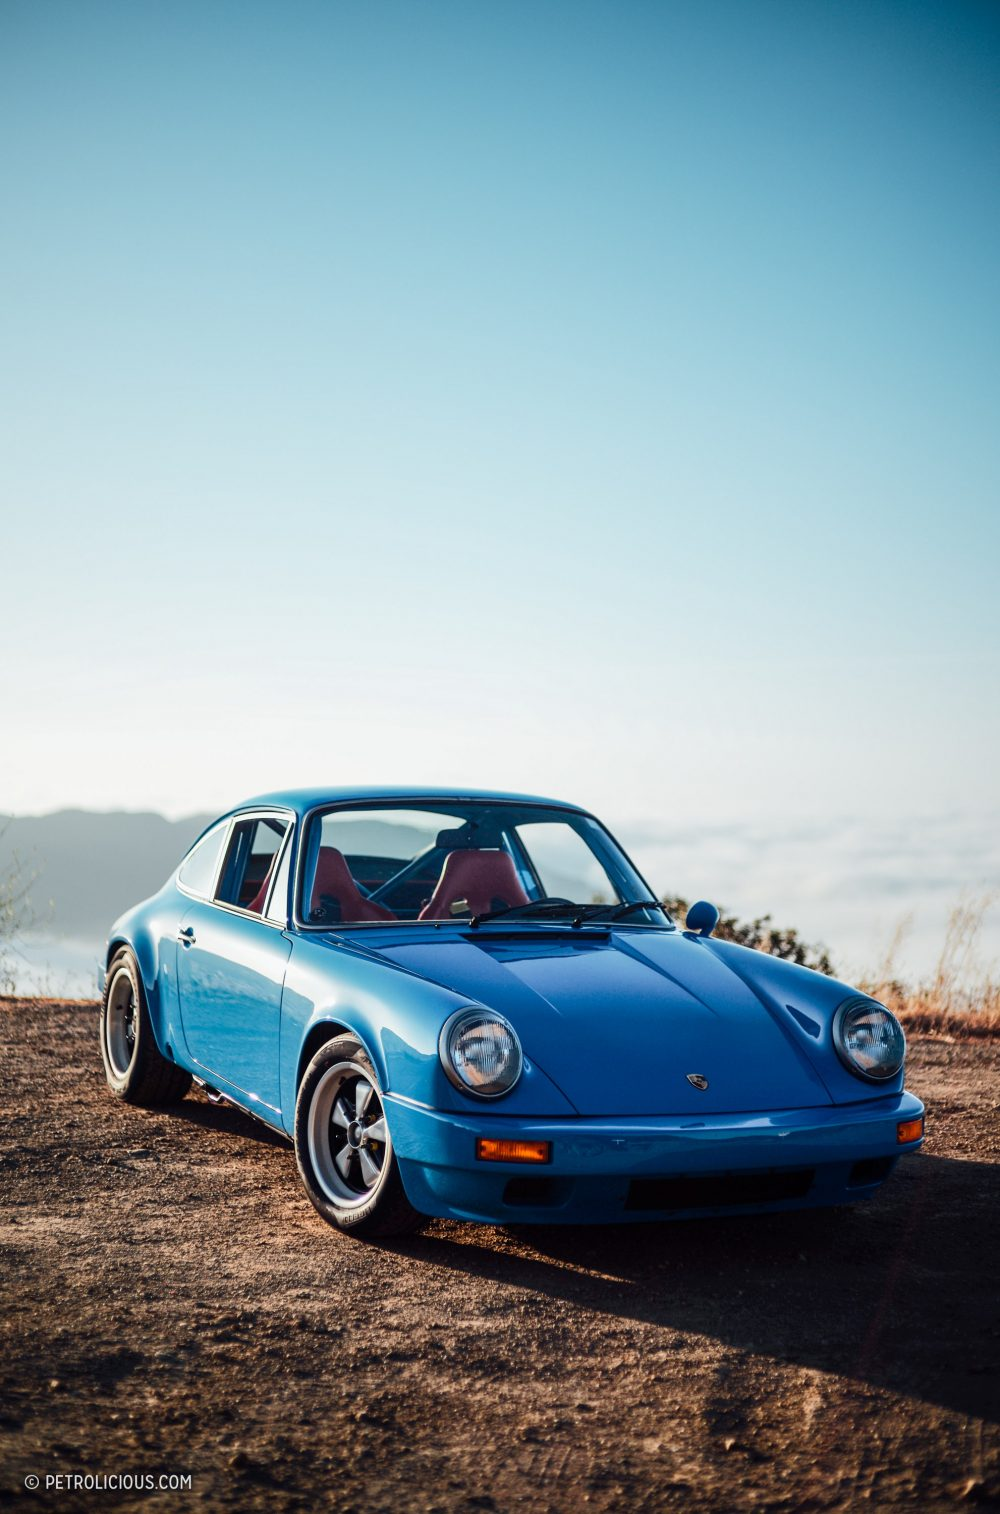 Workshop5001s Latest 911 Build Is A Blue Autocross Beast Petrolicious 1972 Porsche Wiring Harness Marlon Goldberg Well The Car Was One I Knew About Before Had Client For It My Friend Roberto Who Imports Celette Workstation Benches And Lifts From